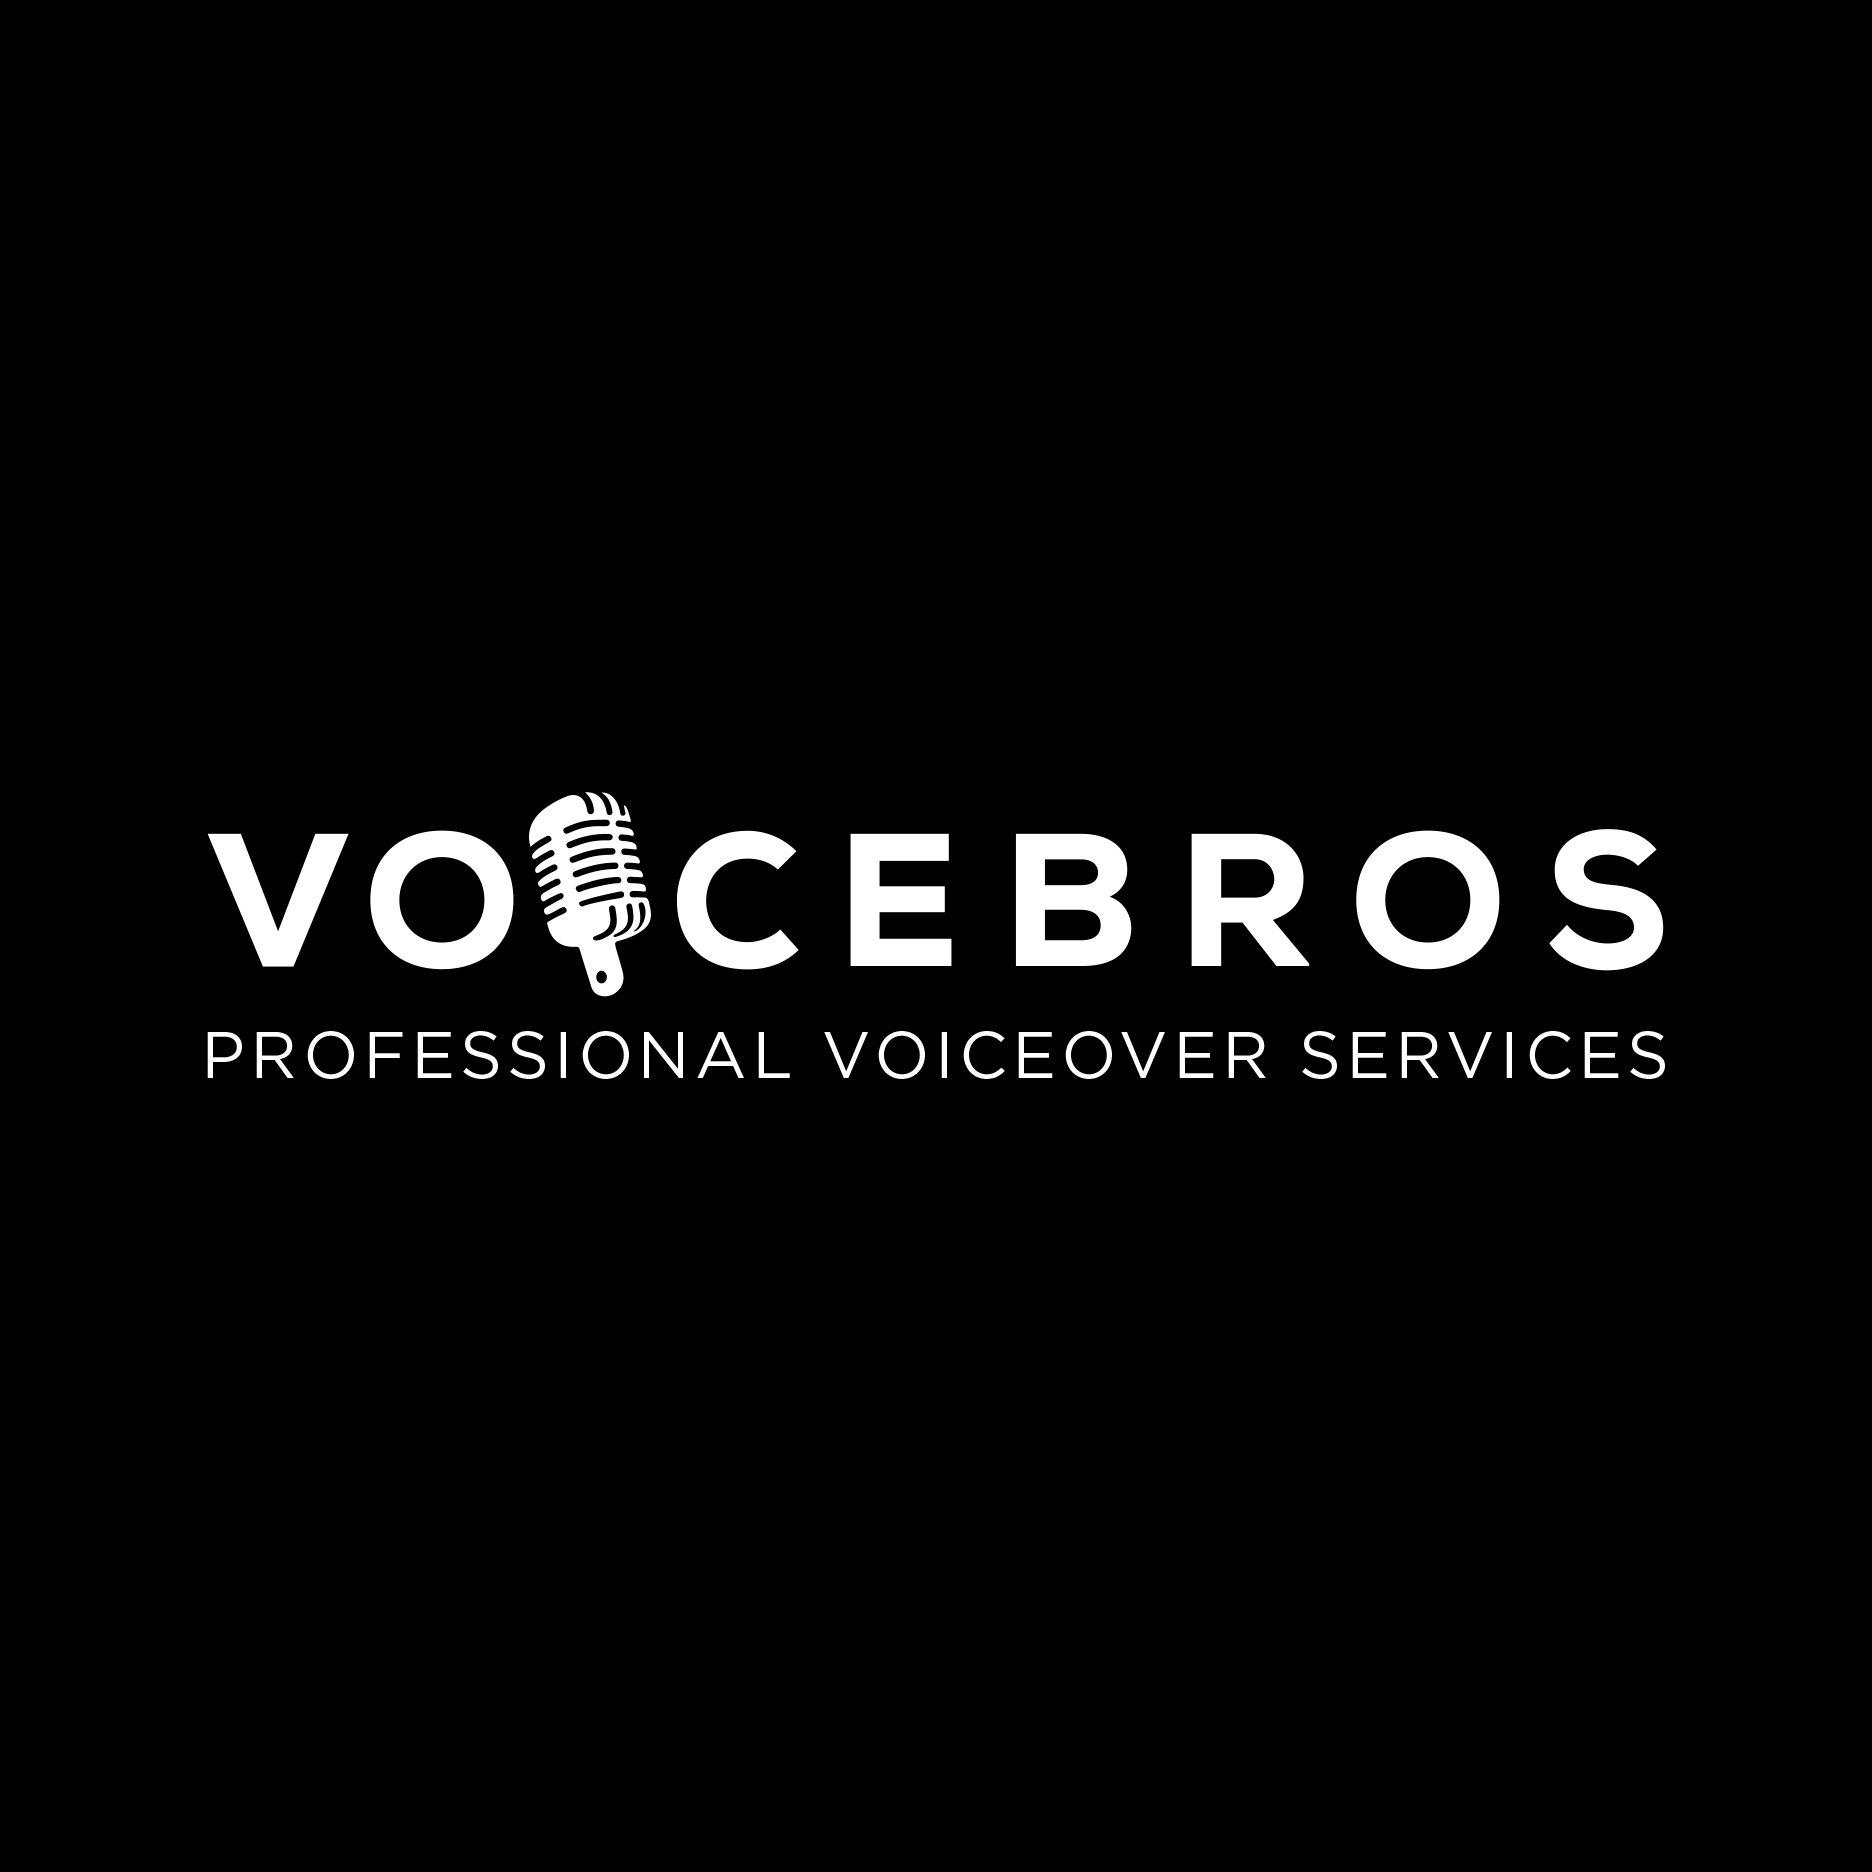 Francesco Wolf is a voice over actor